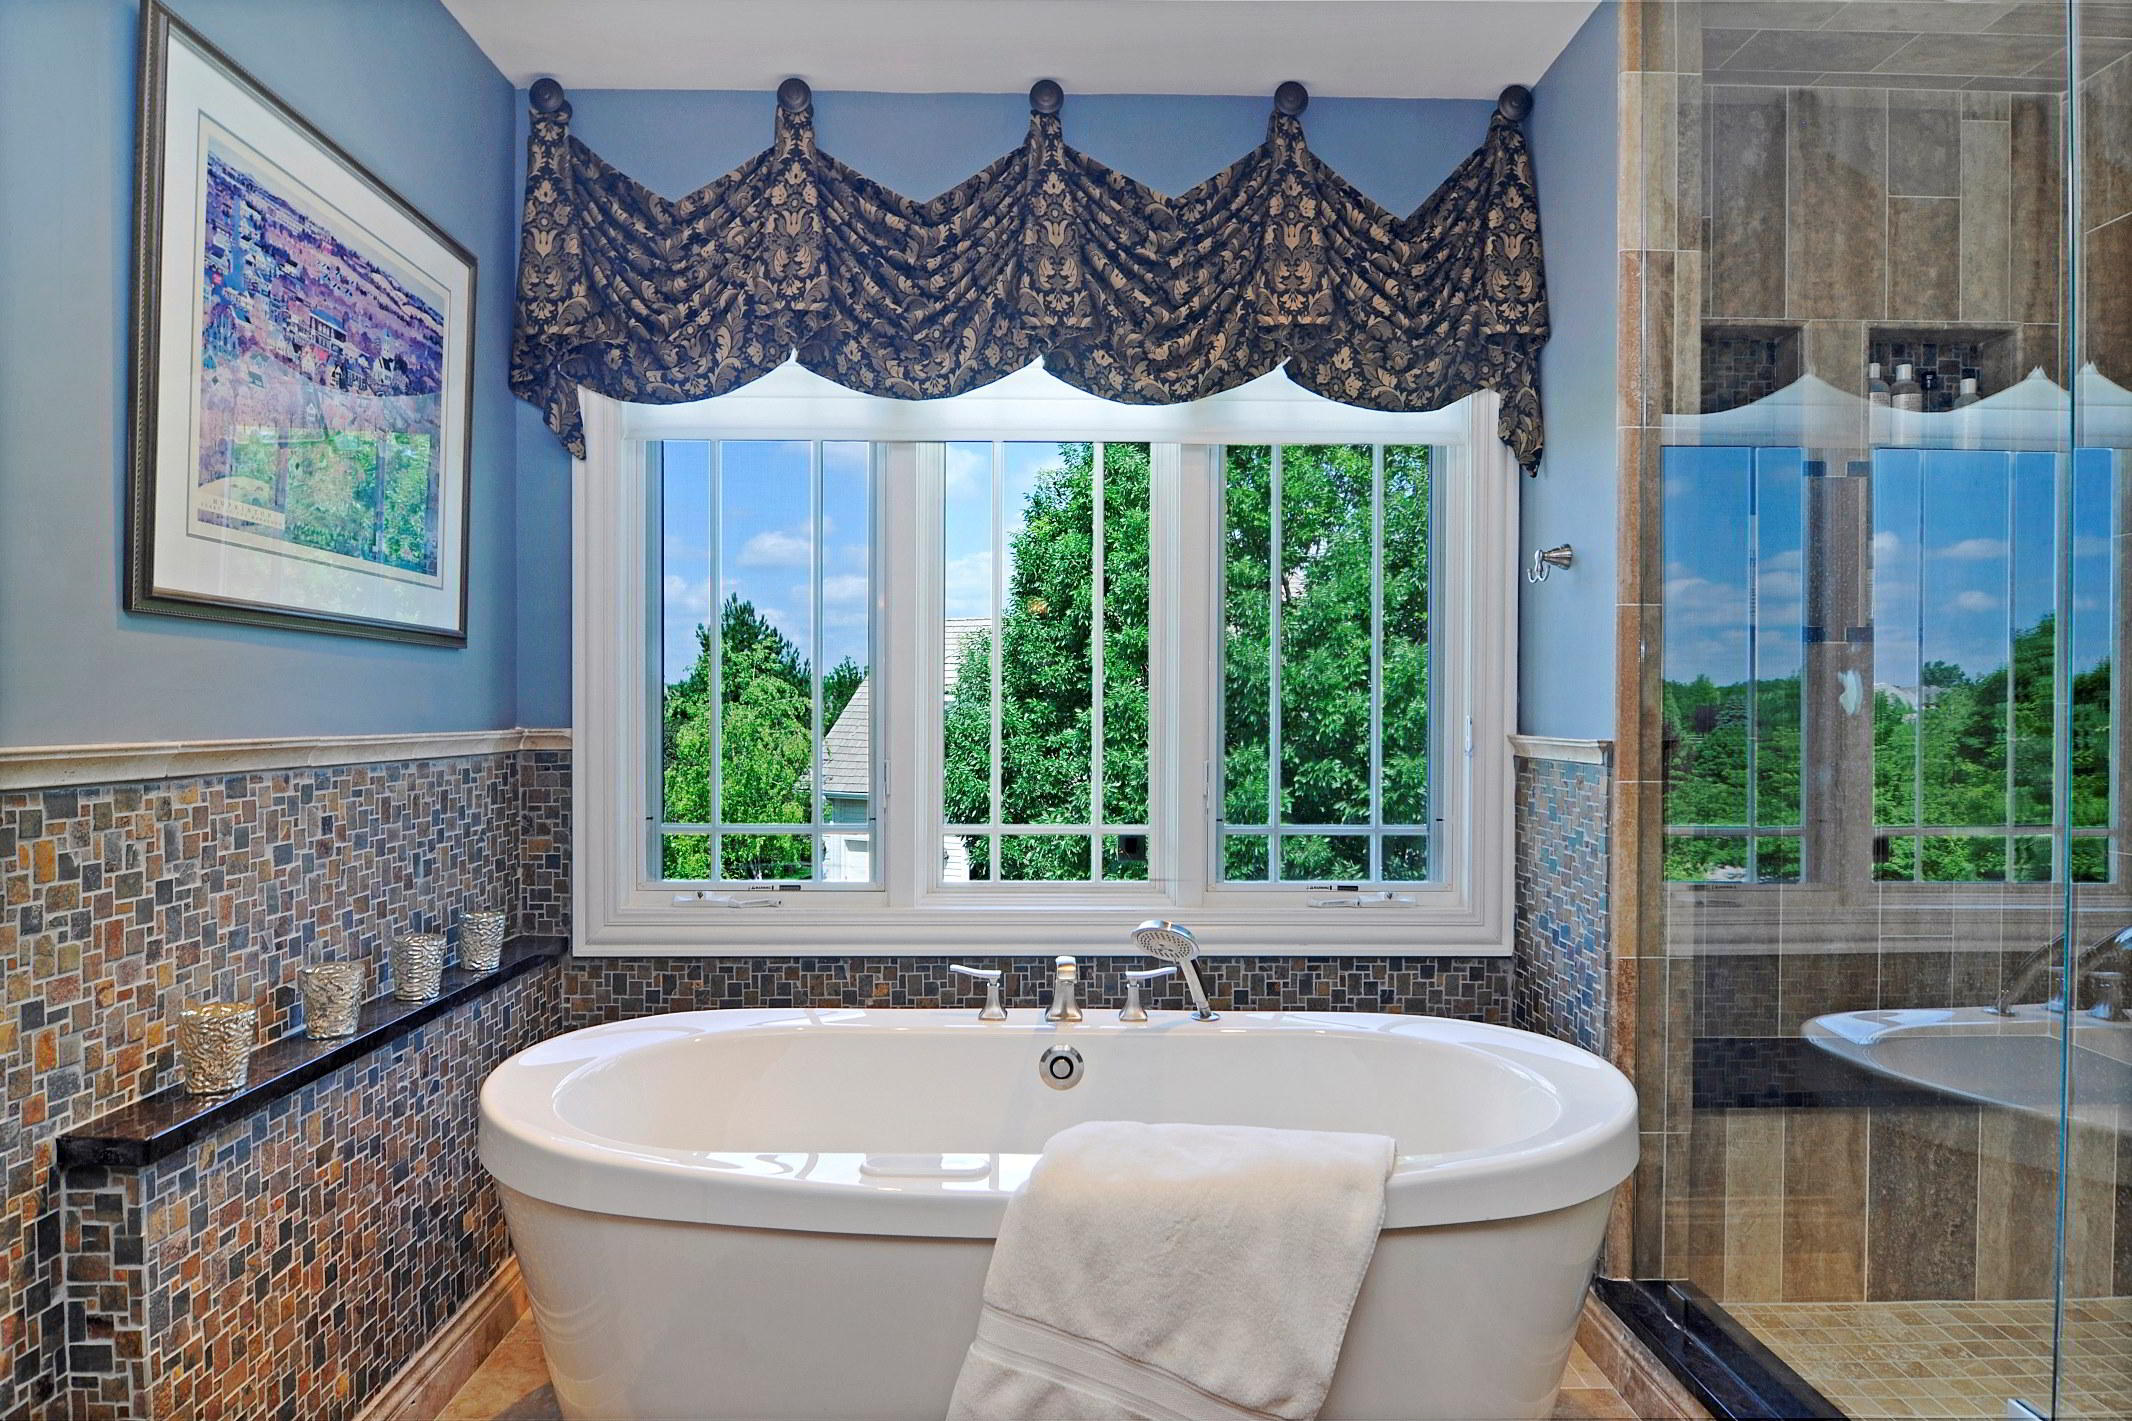 Bathroom Design Portfolio Expert Bathroom Design Build Consultant - Bathroom remodeling geneva il